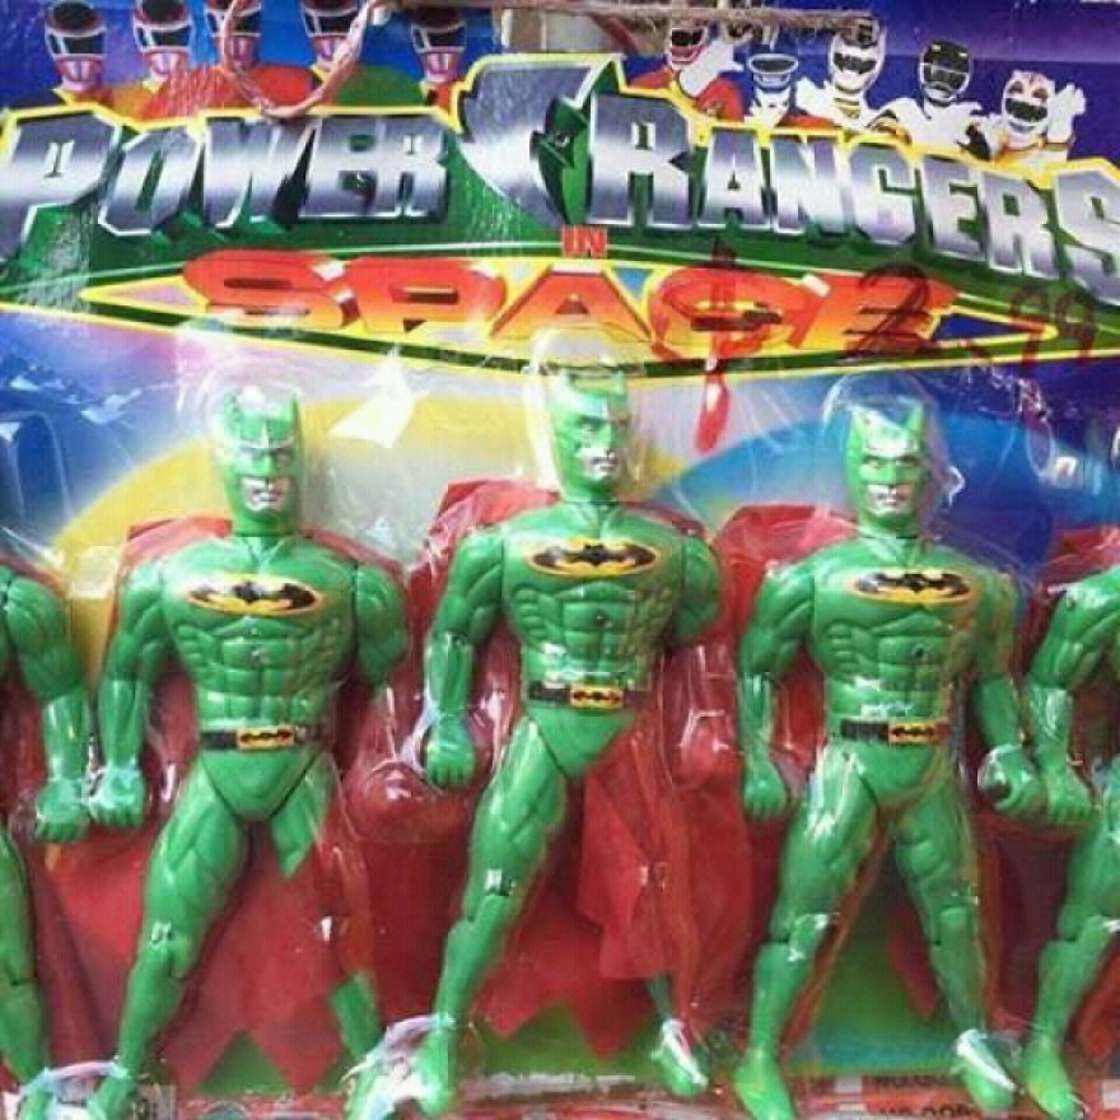 21 - Power rangers toys that looks like strange green batmen.